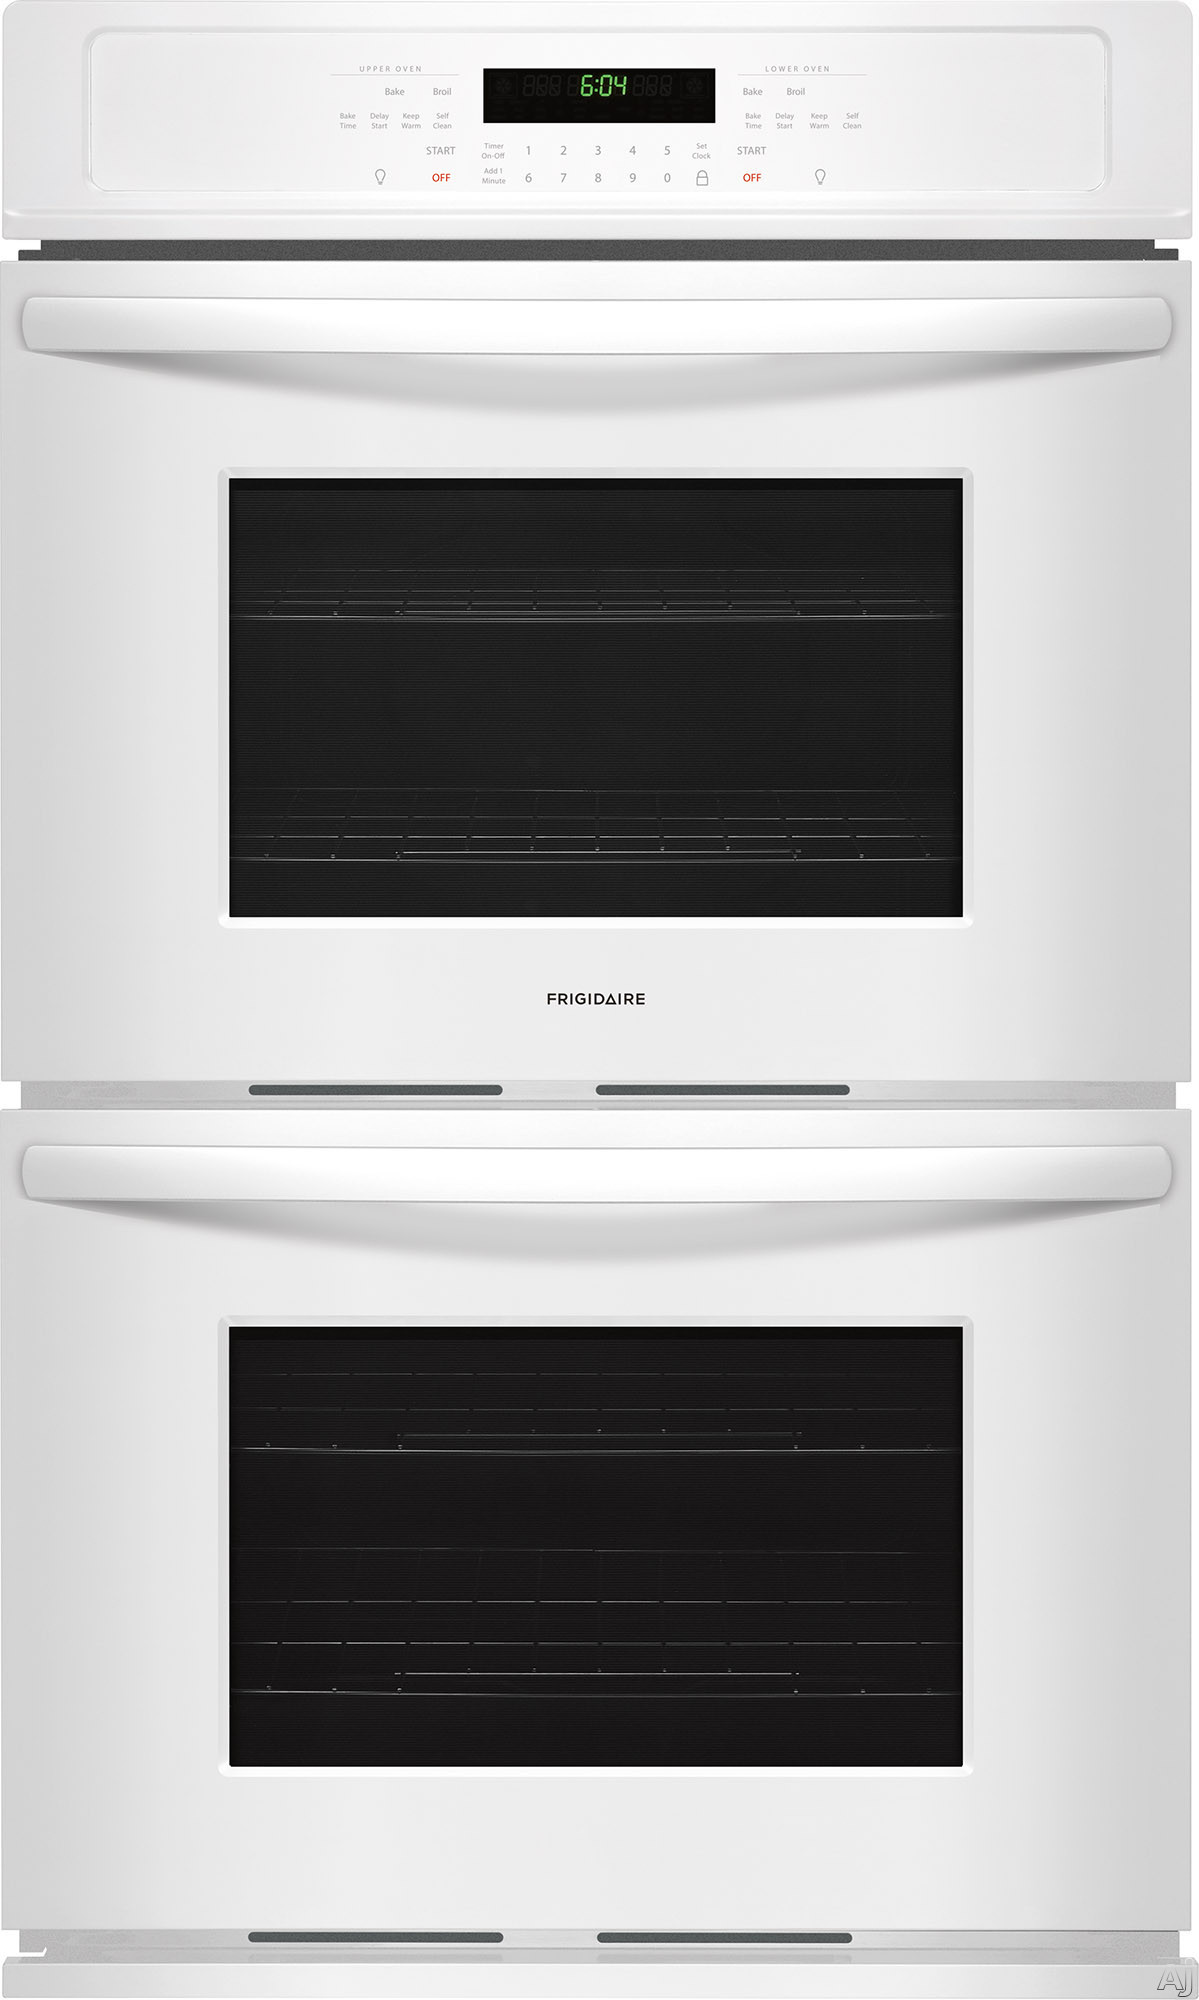 Frigidaire FFET3026TW 30 Inch Built-In Electric Double Wall Oven with Vari-Broil™ Temperature Control, Even Baking, Self-Cleaning, Ready-Select® Controls, Delay Clean, Delay Bake, Timed Cook,